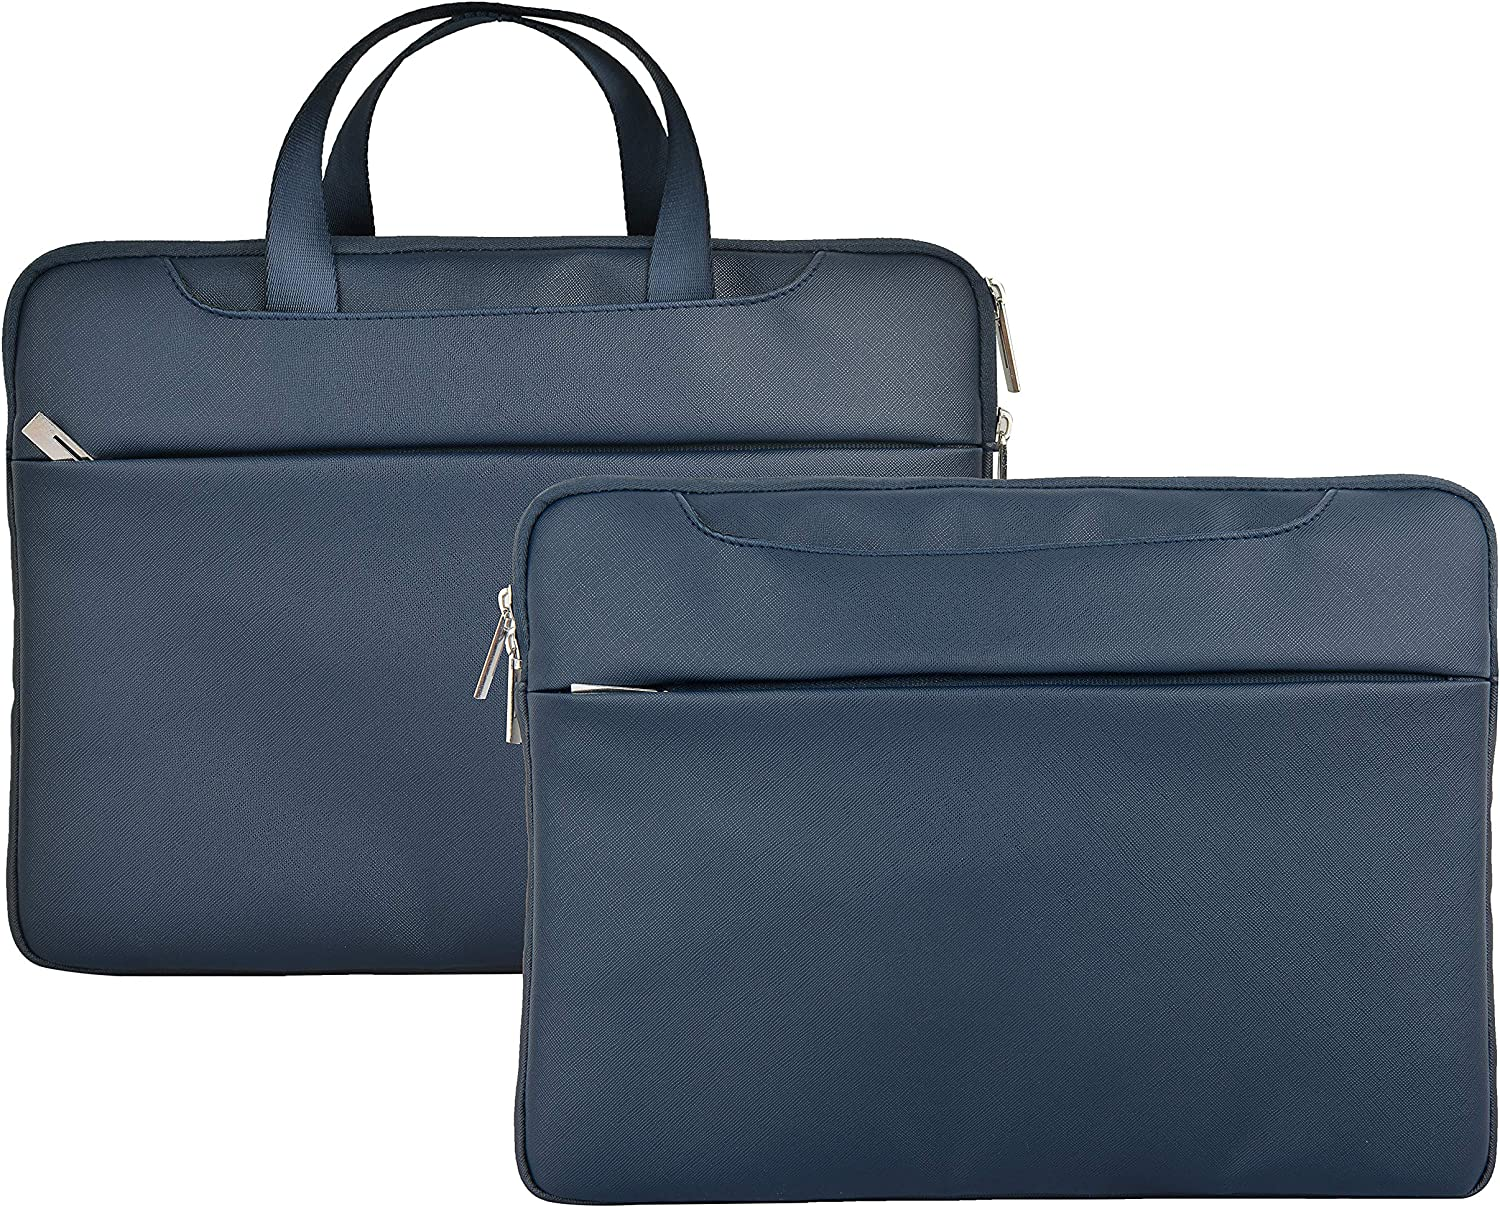 "LuvCase Laptop Leather Sleeve Briefcase Bag with Zip Pocket Handle Compatible with MacBook 12"" A1534/ Air 11.6 inch, Surface Pro 5,4,3, Chromebook, Acer, Asus, Notebook (Navy Leather Sleeve)"